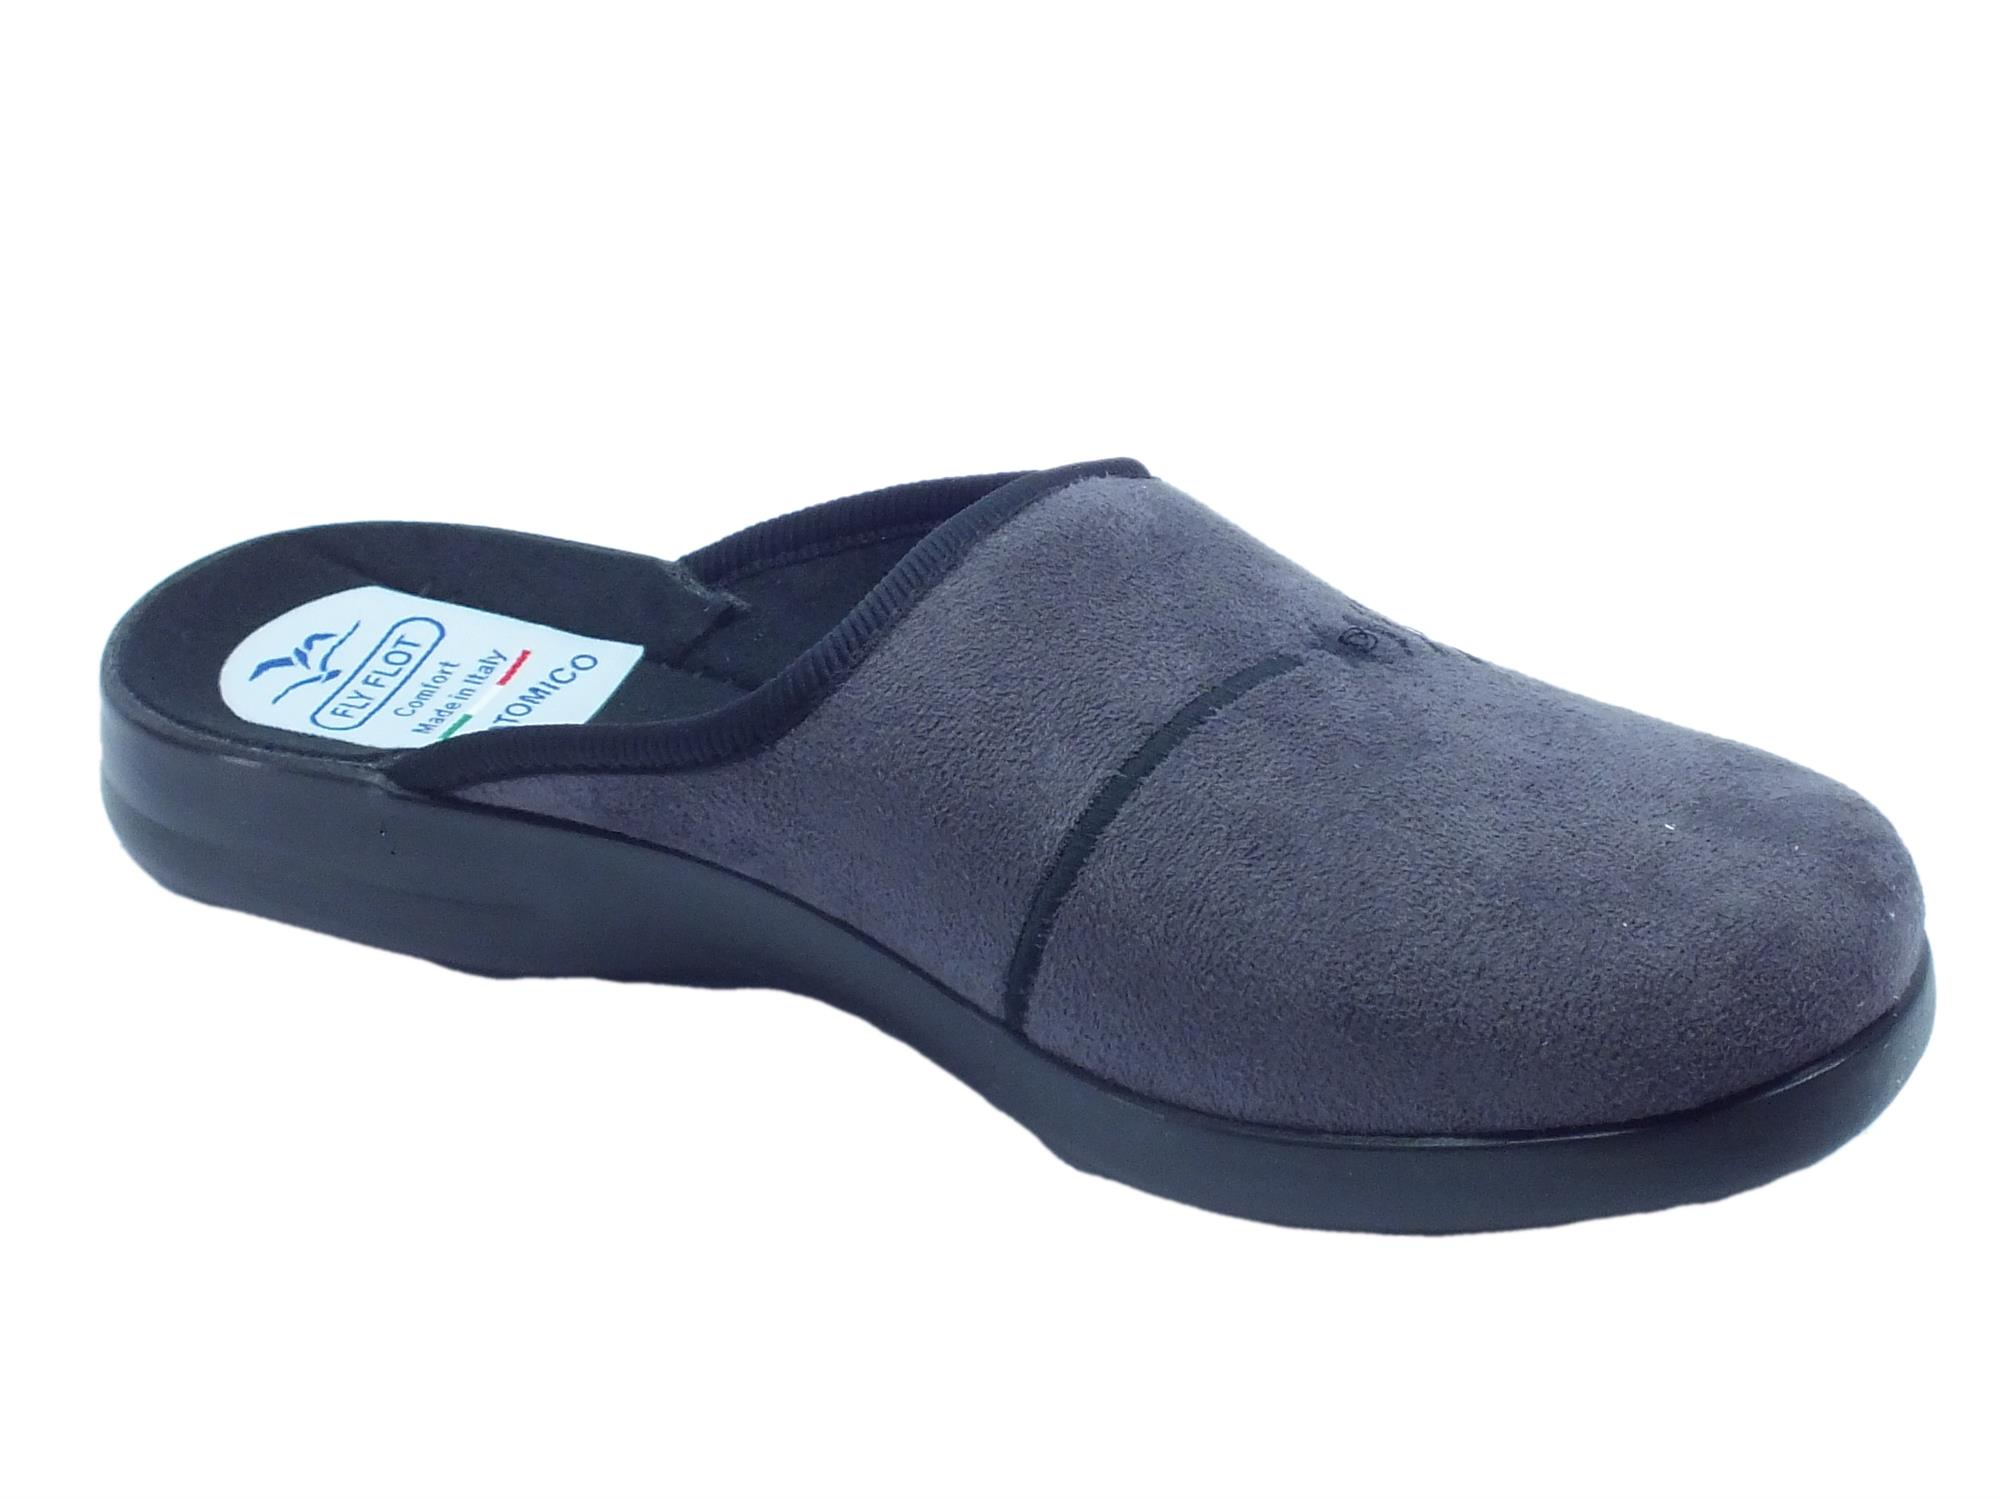 ... Pantofole Fly Flot per uomo in tessuto antracite sottopiede anatomico  ... b3a277fc2af